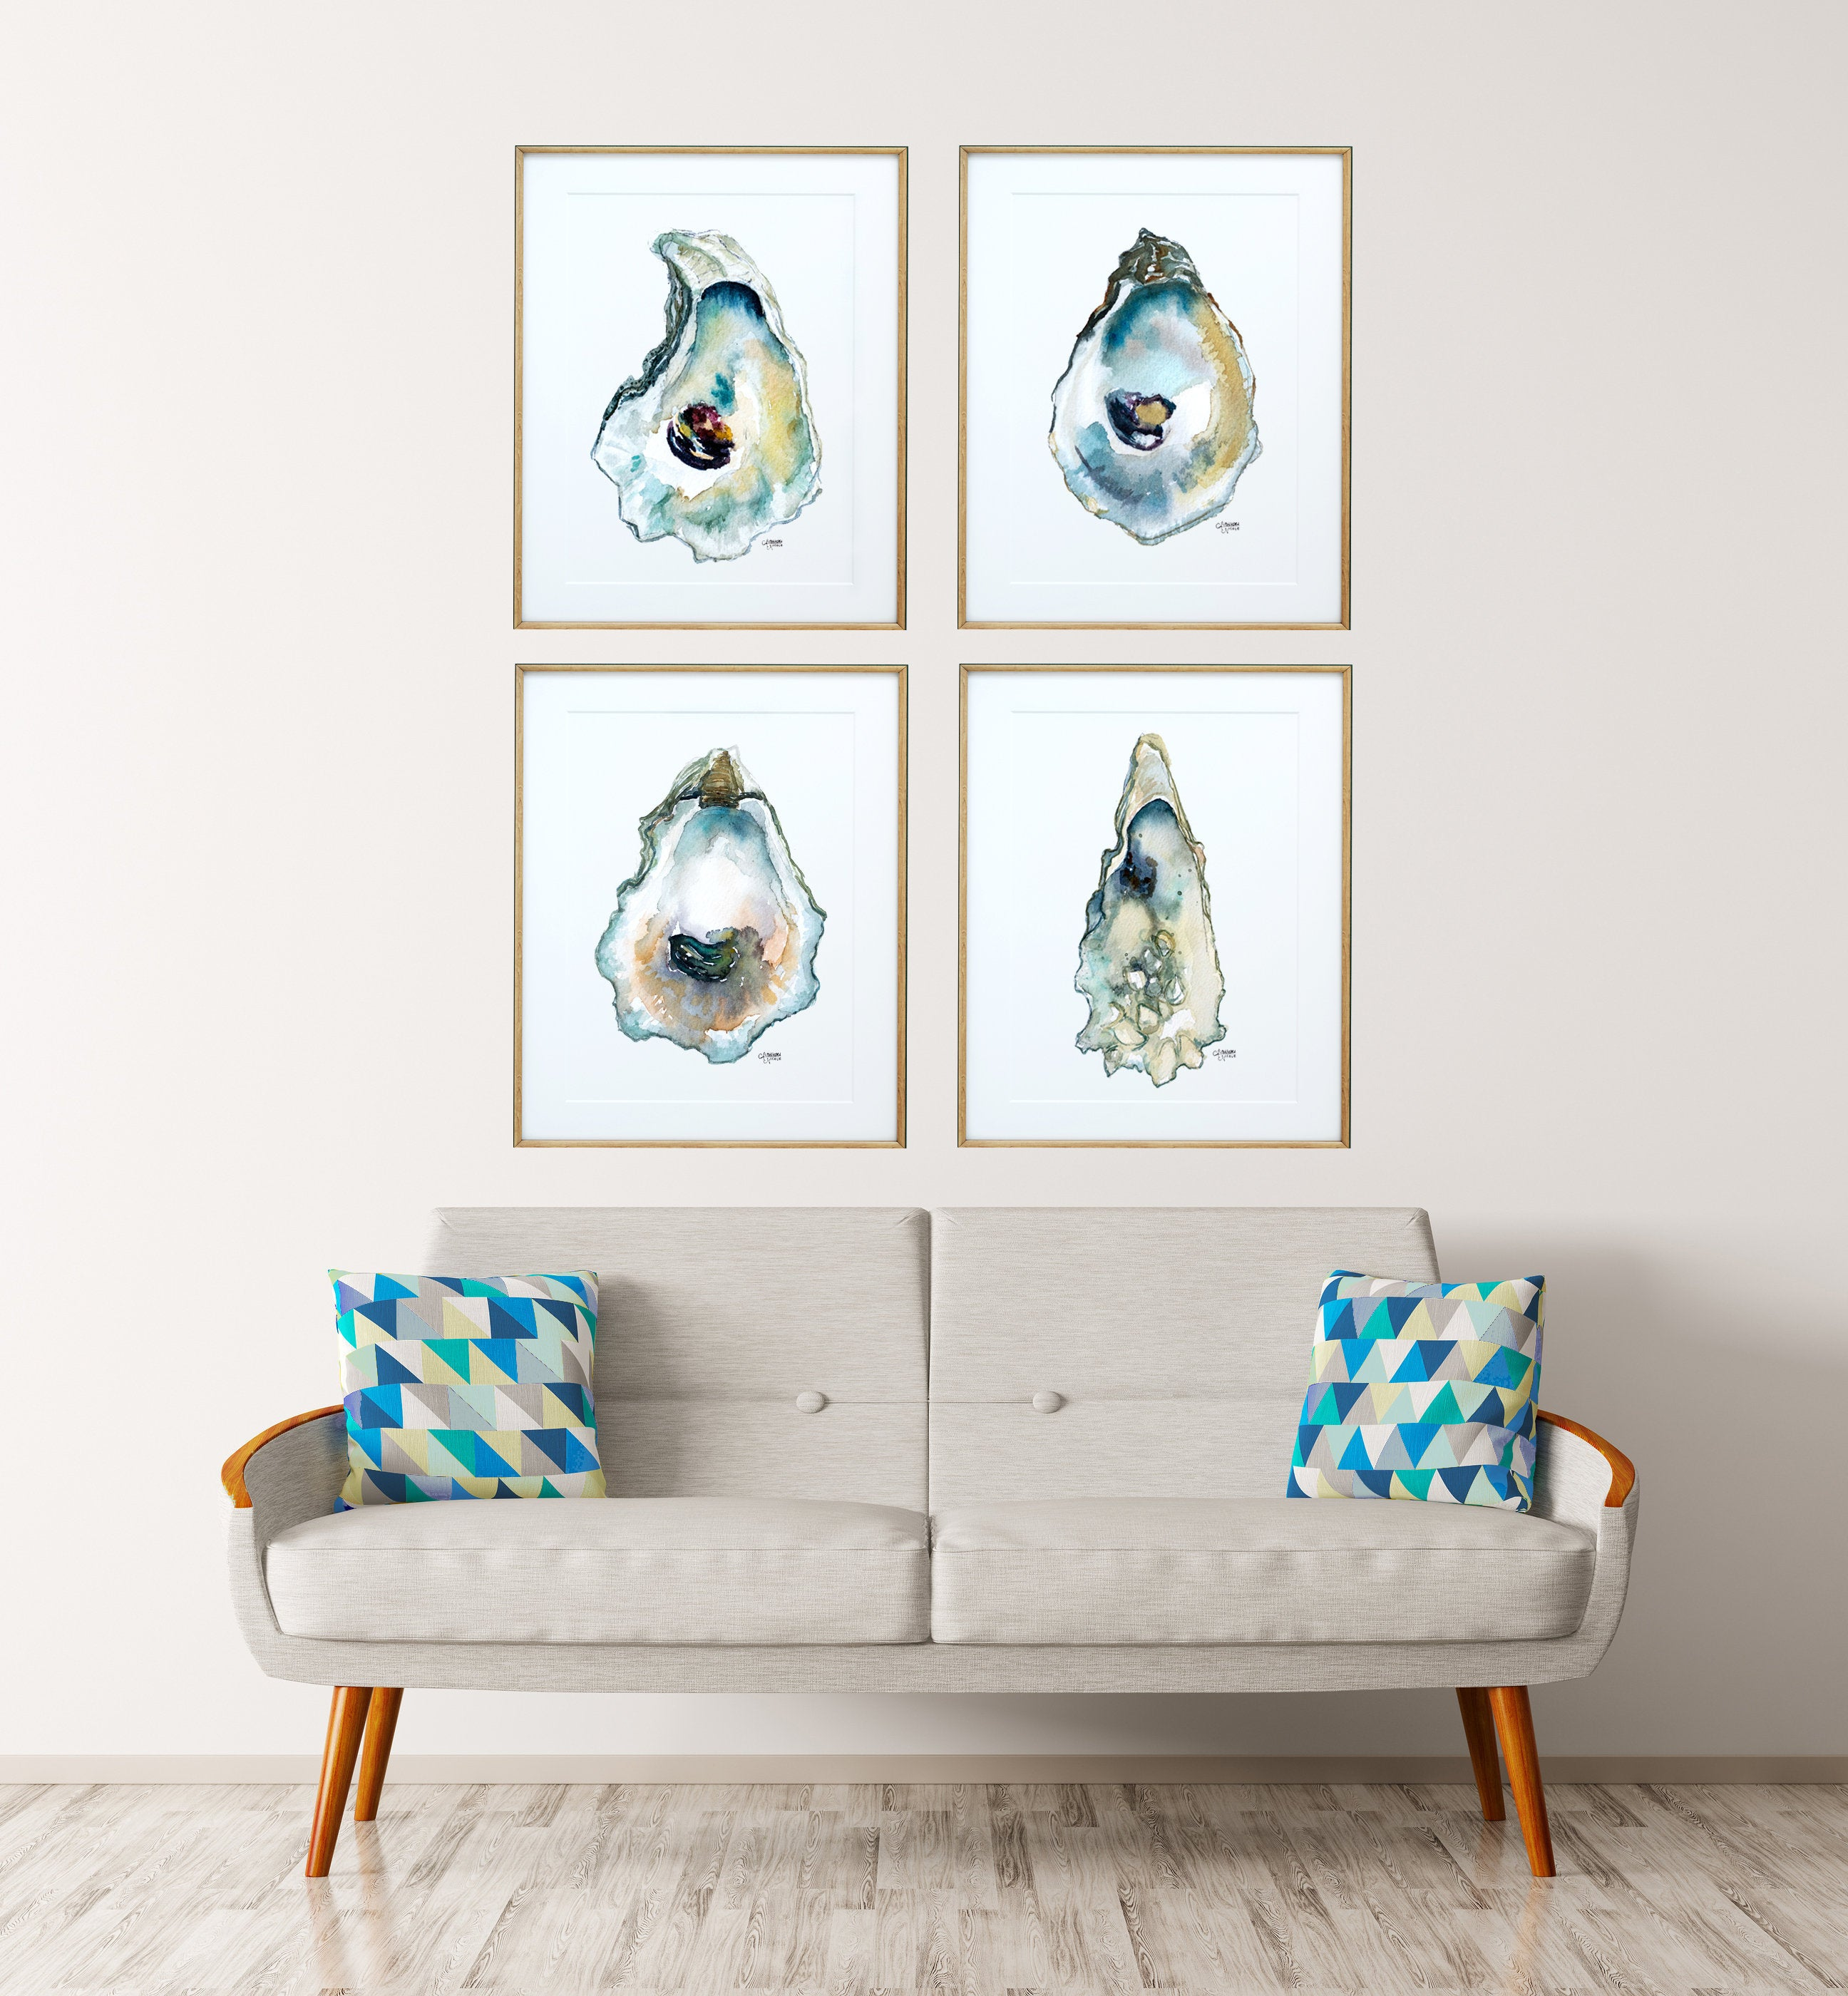 Watercolor Oyster Art Print Set of 4 by Coastal Artist Alexandra Nicole $96